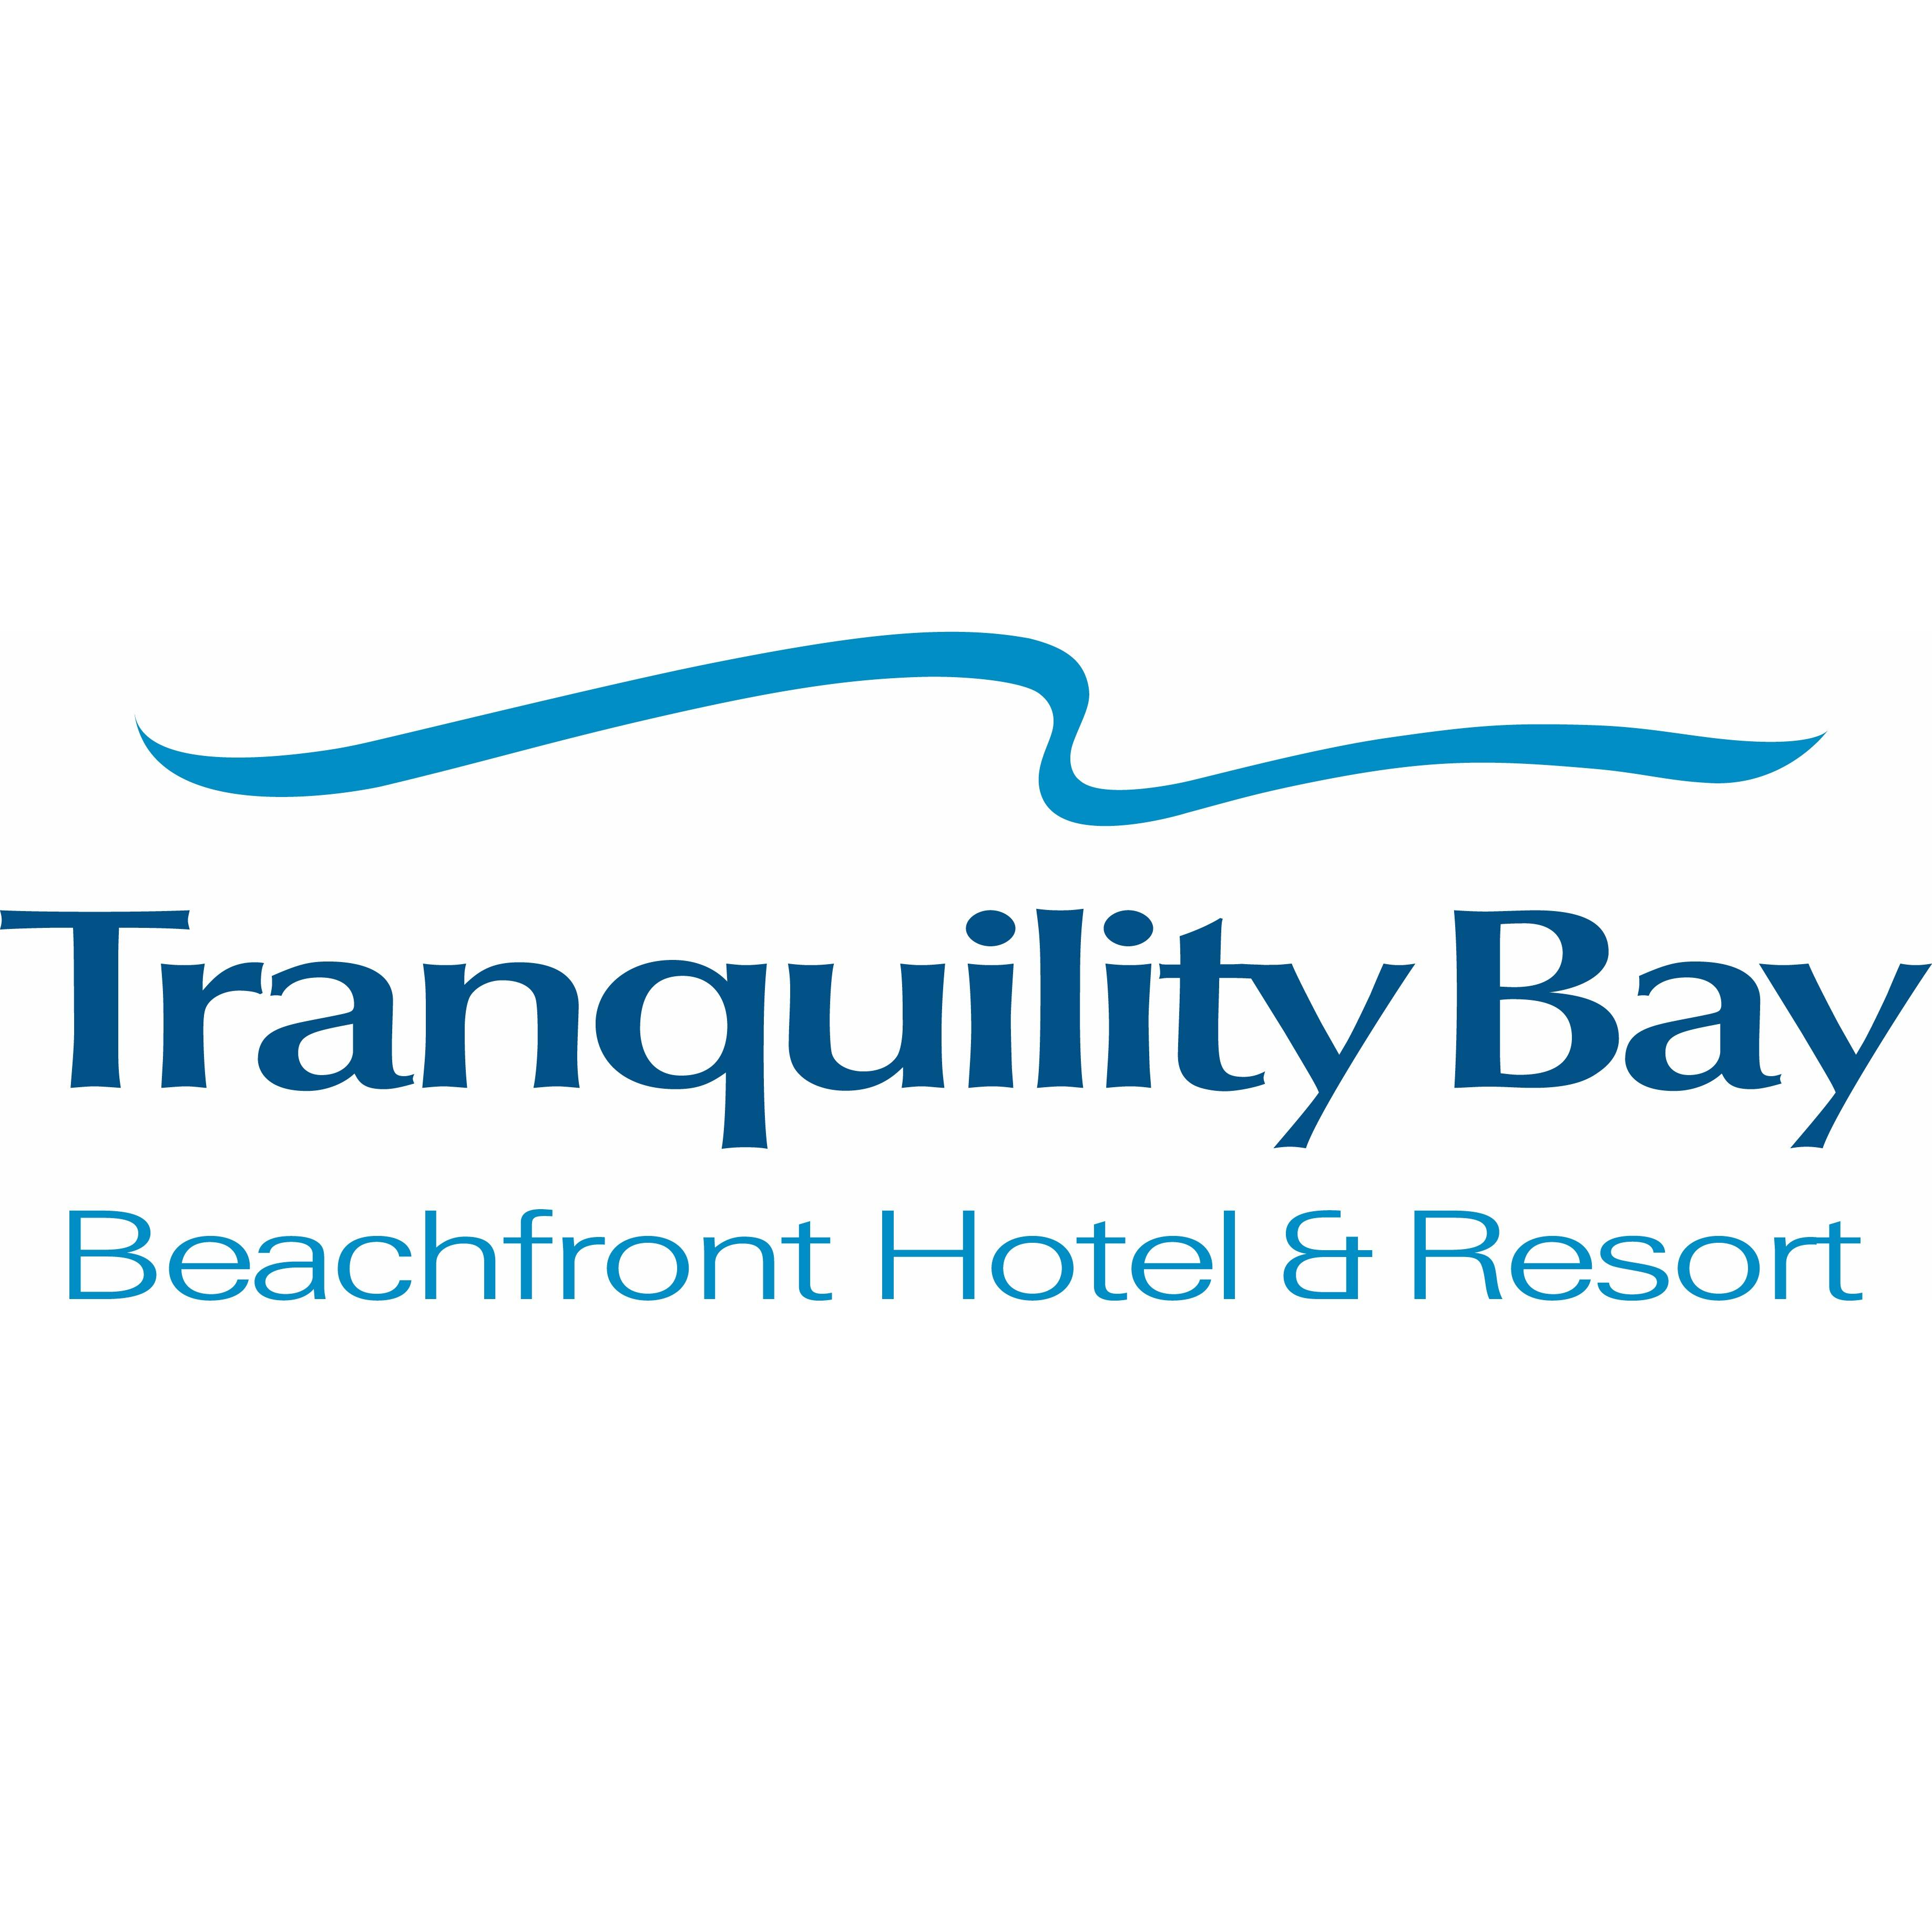 Tranquility Bay Beach House Resort image 3